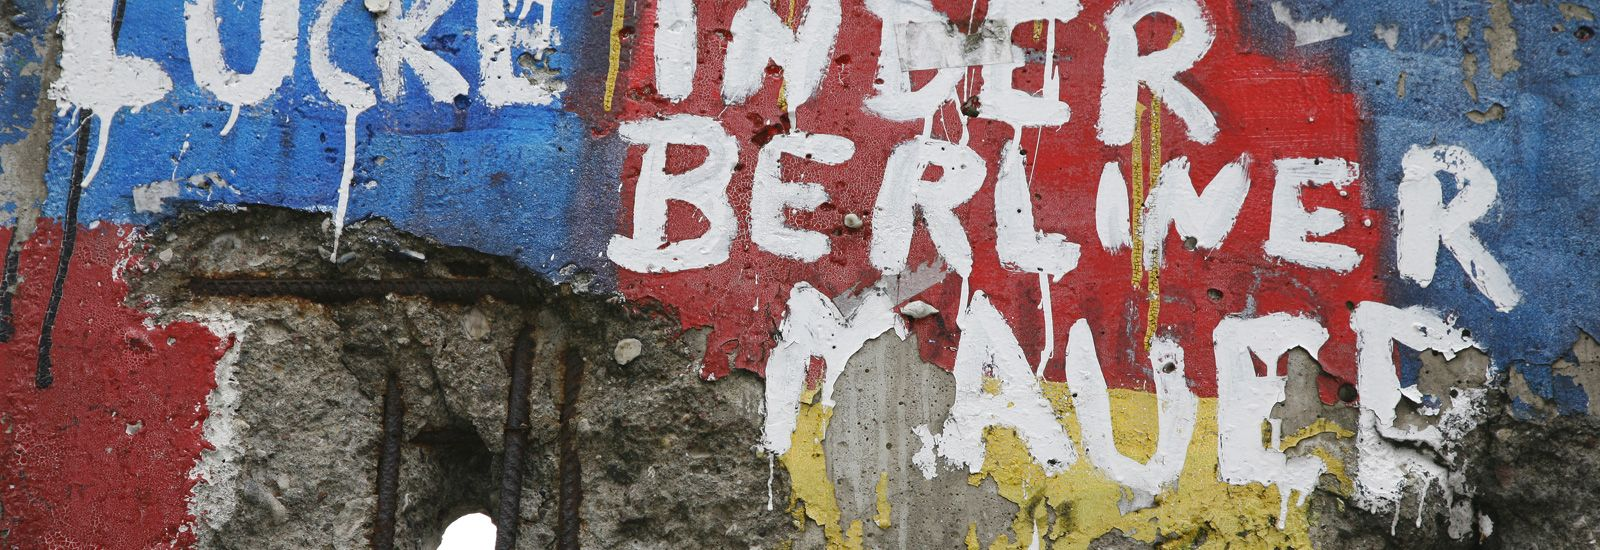 Graffiti on one of the remaining sections of the Berlin wall, Germany